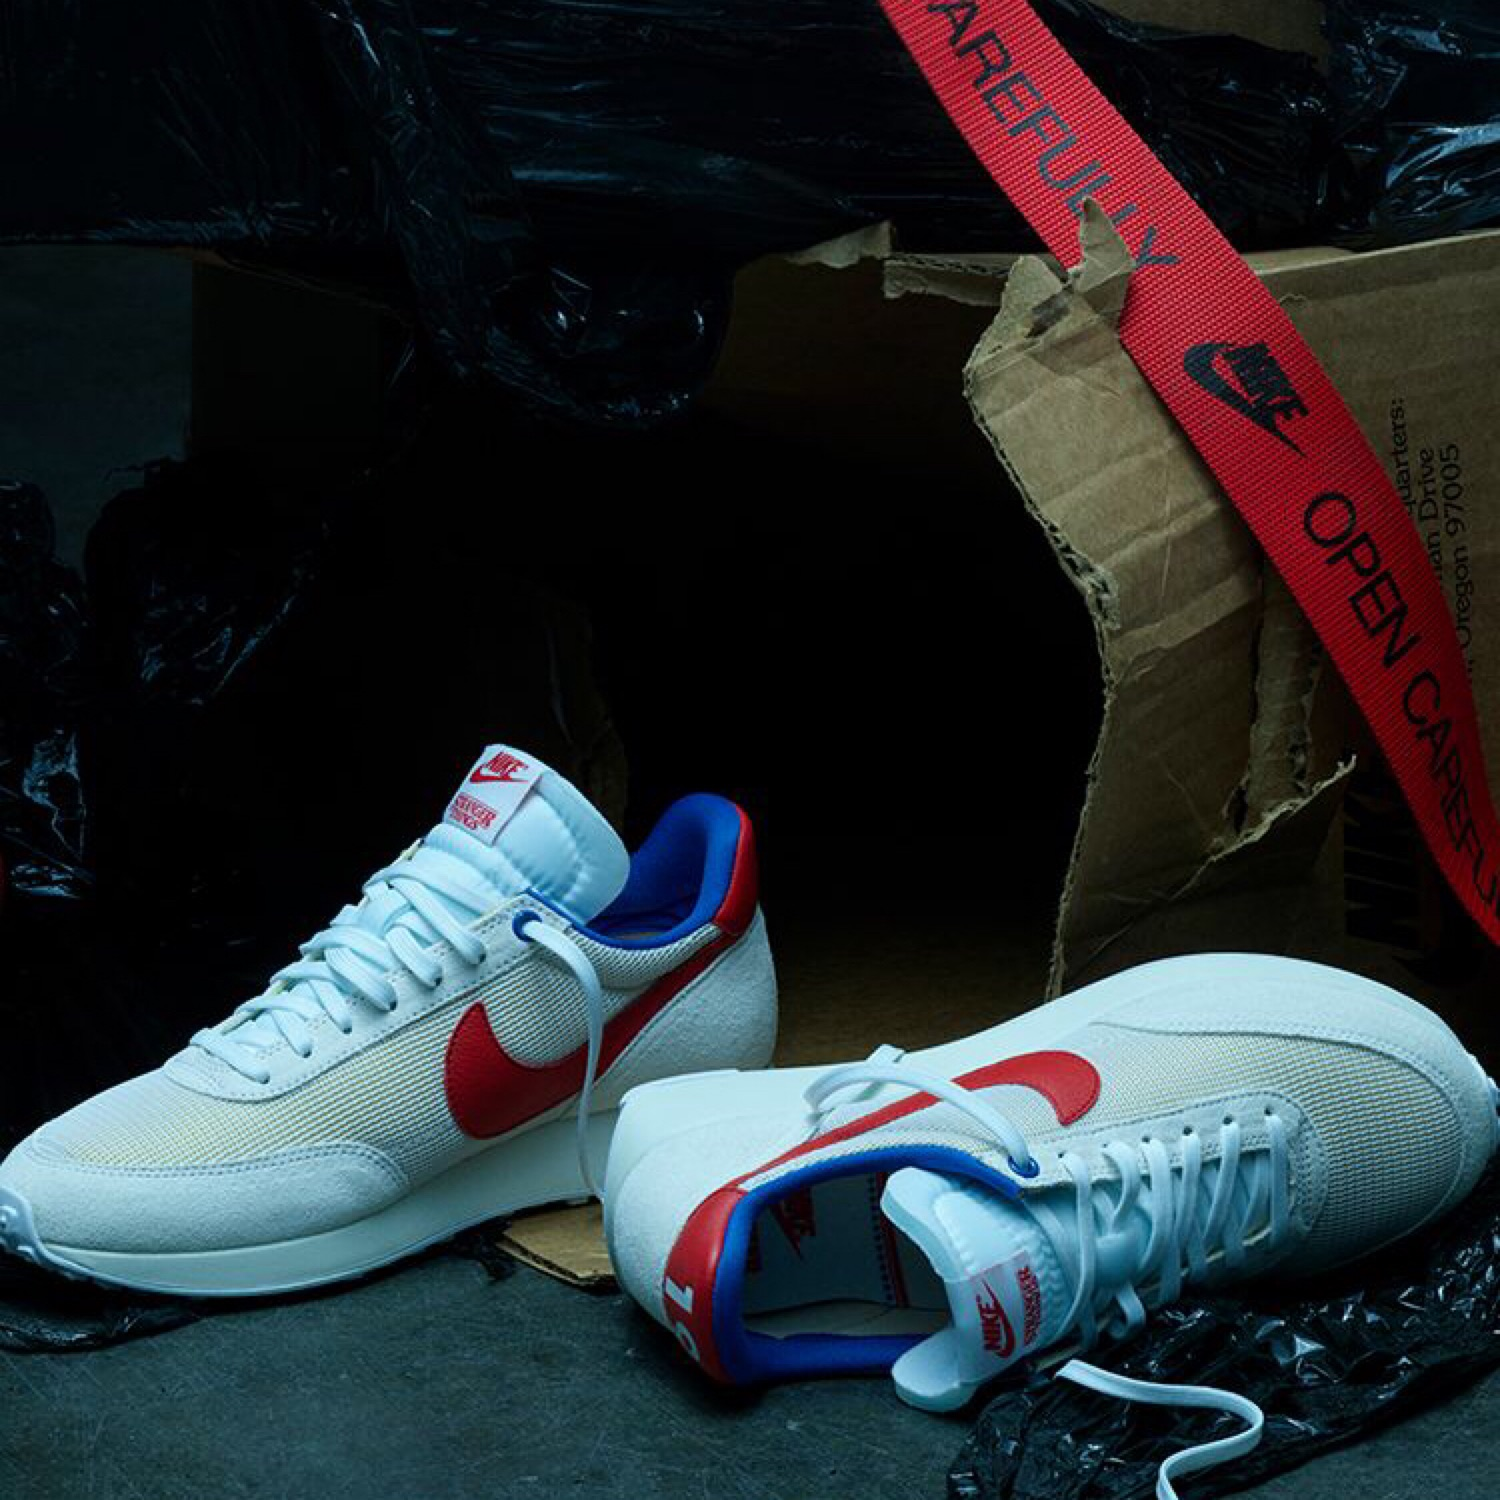 Nike X Stranger Things Air Tailwind Trainers Proxy